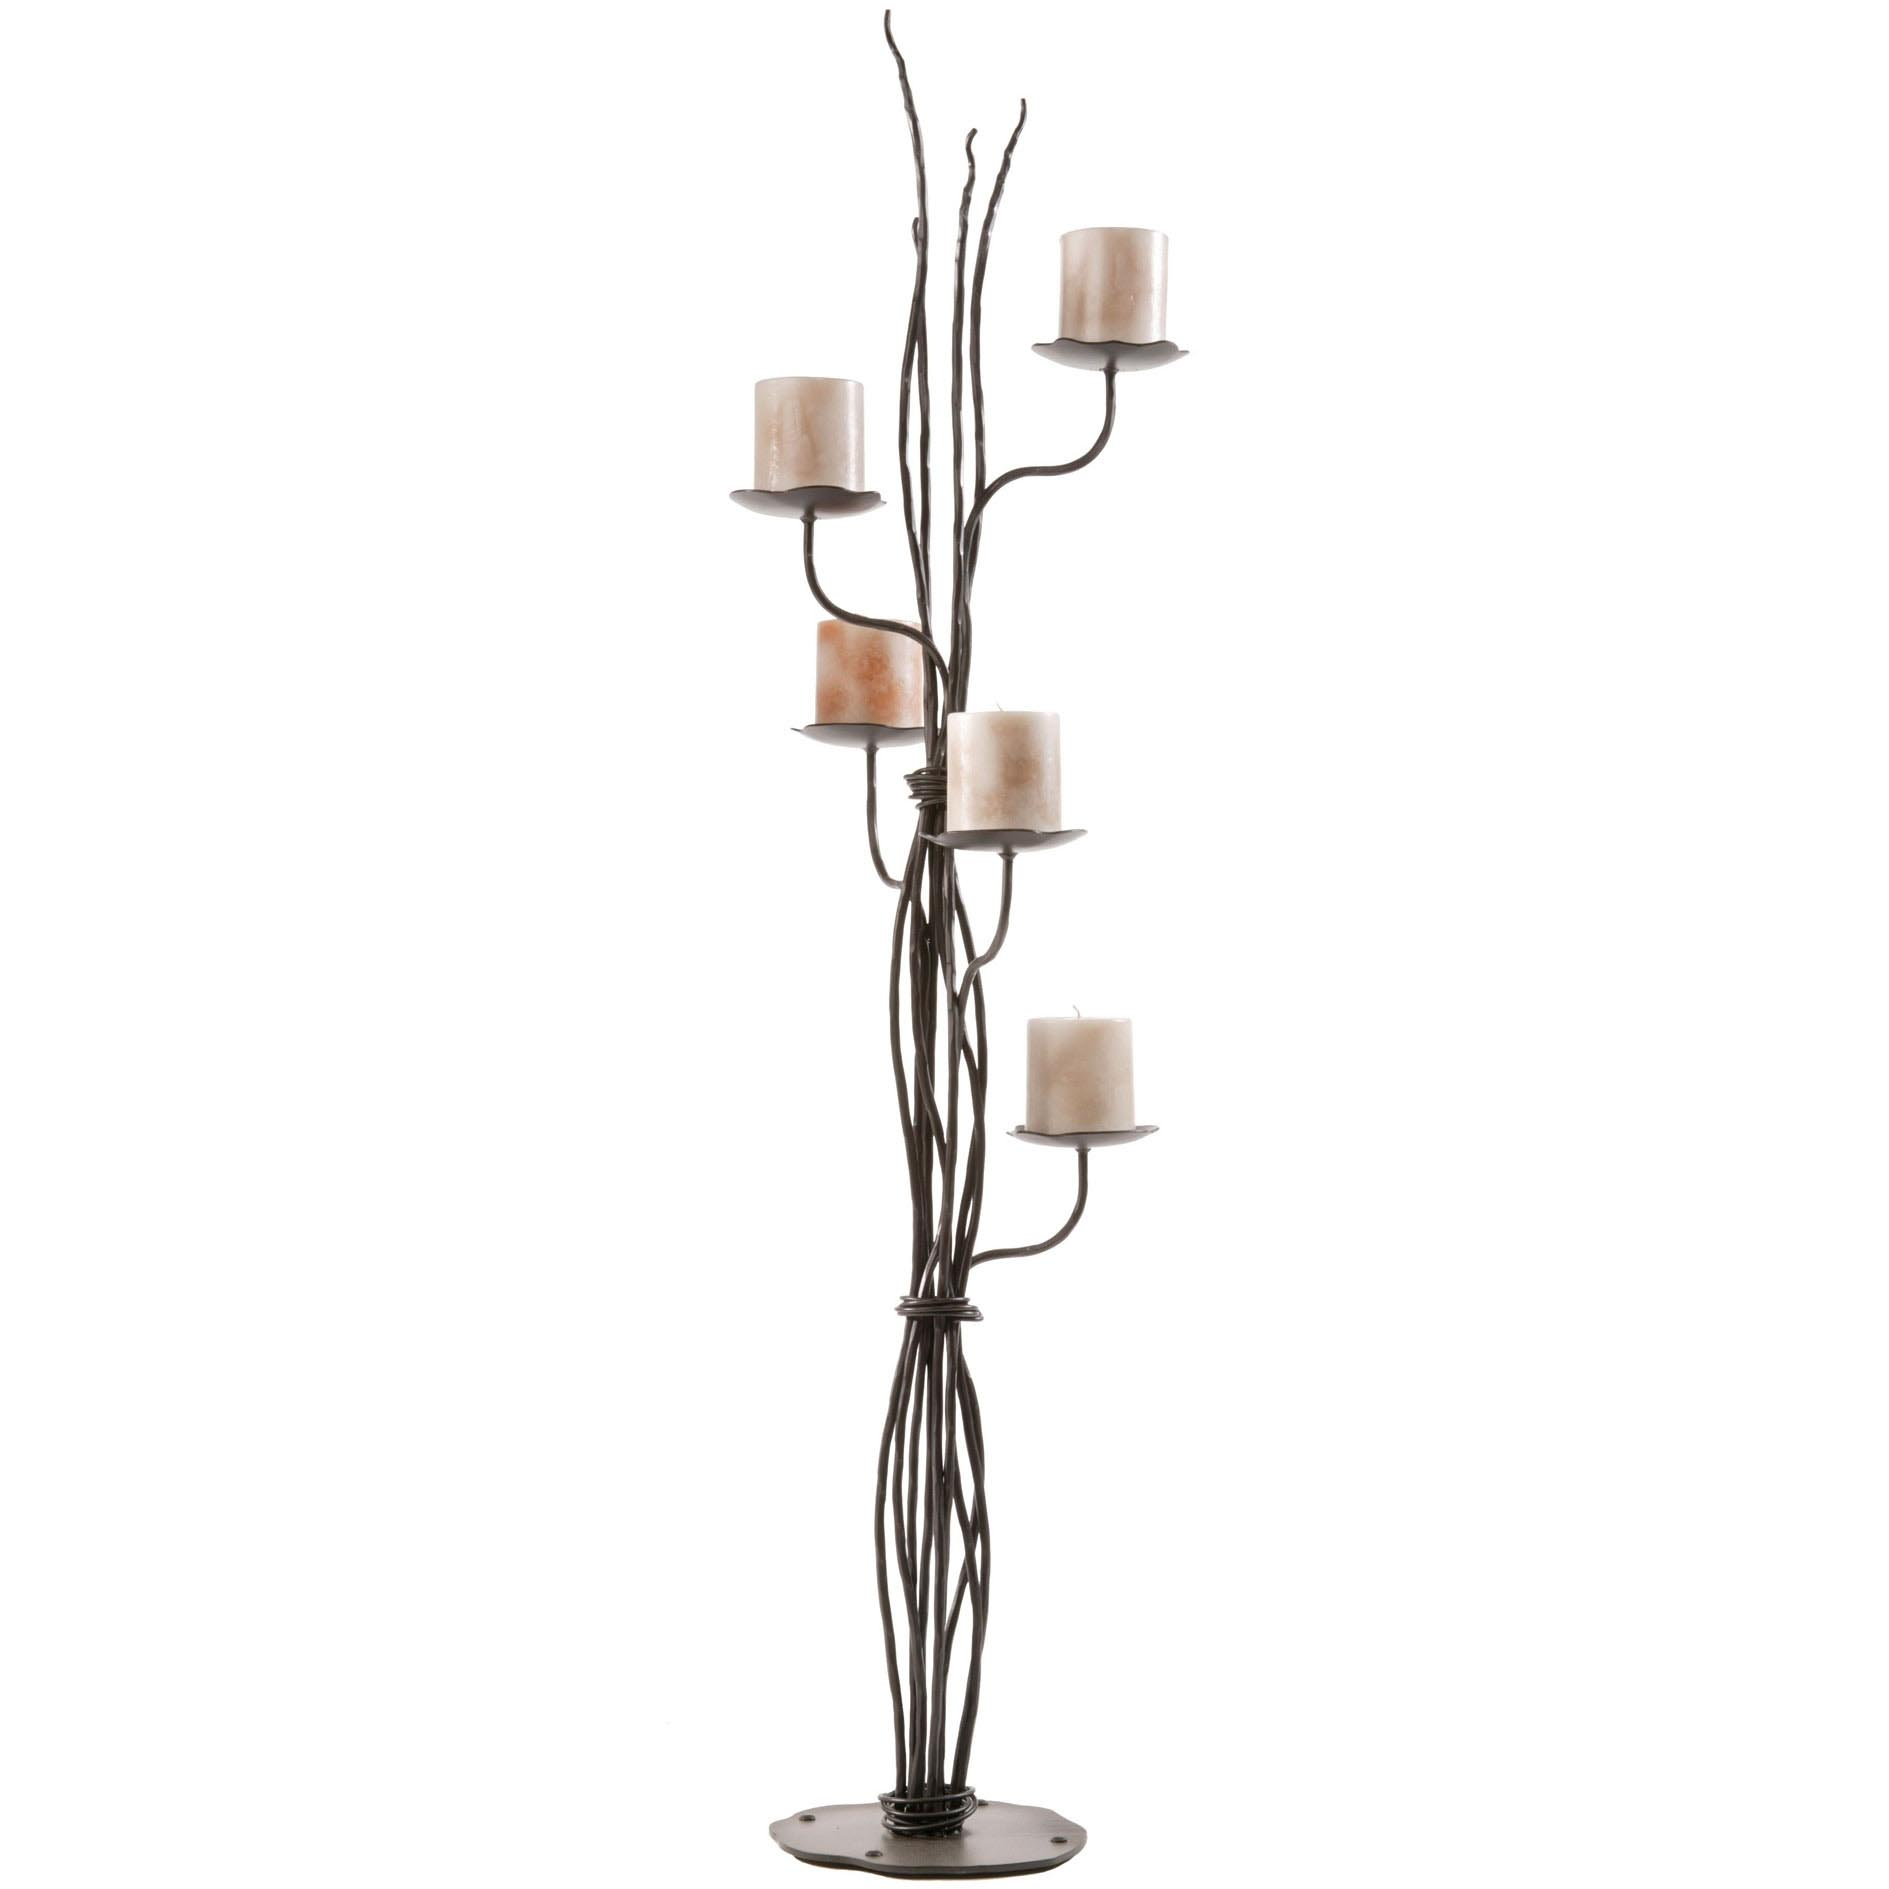 Tall Wrought Iron Candle Holders